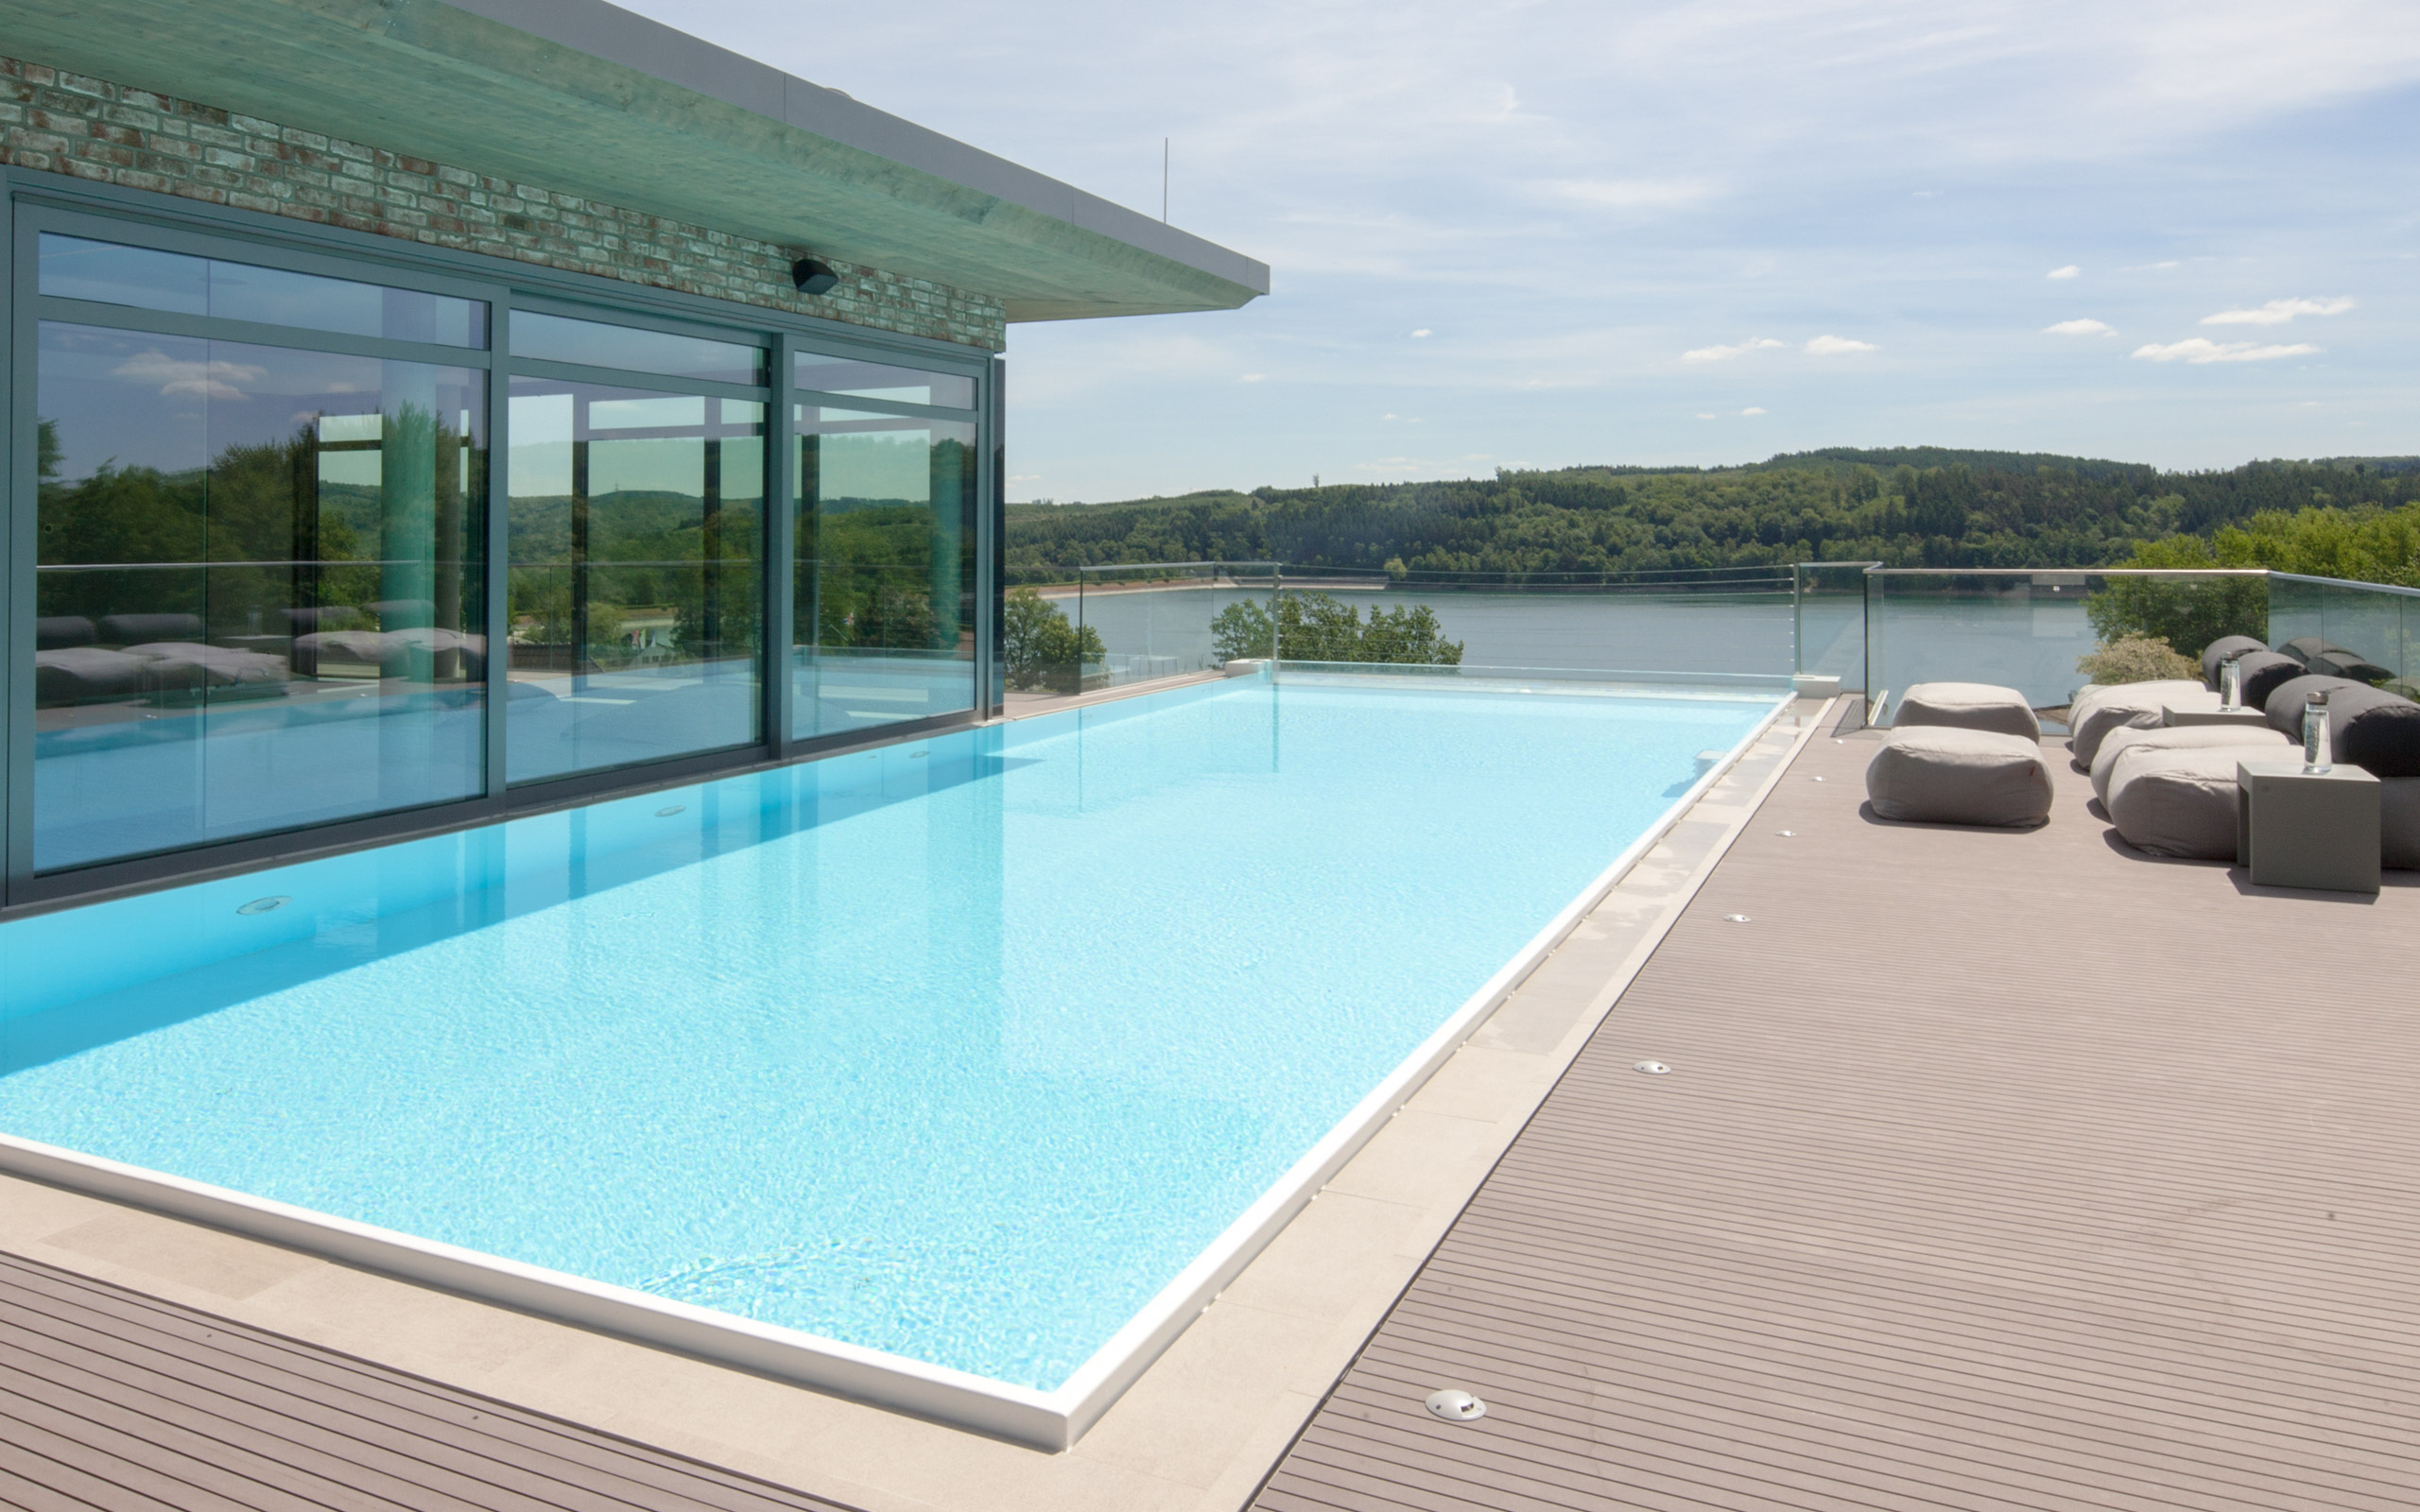 Pool In Terrasse Integriert Ssf Pools By Klafs Pool Whirlpool Und Wellness Spezialist